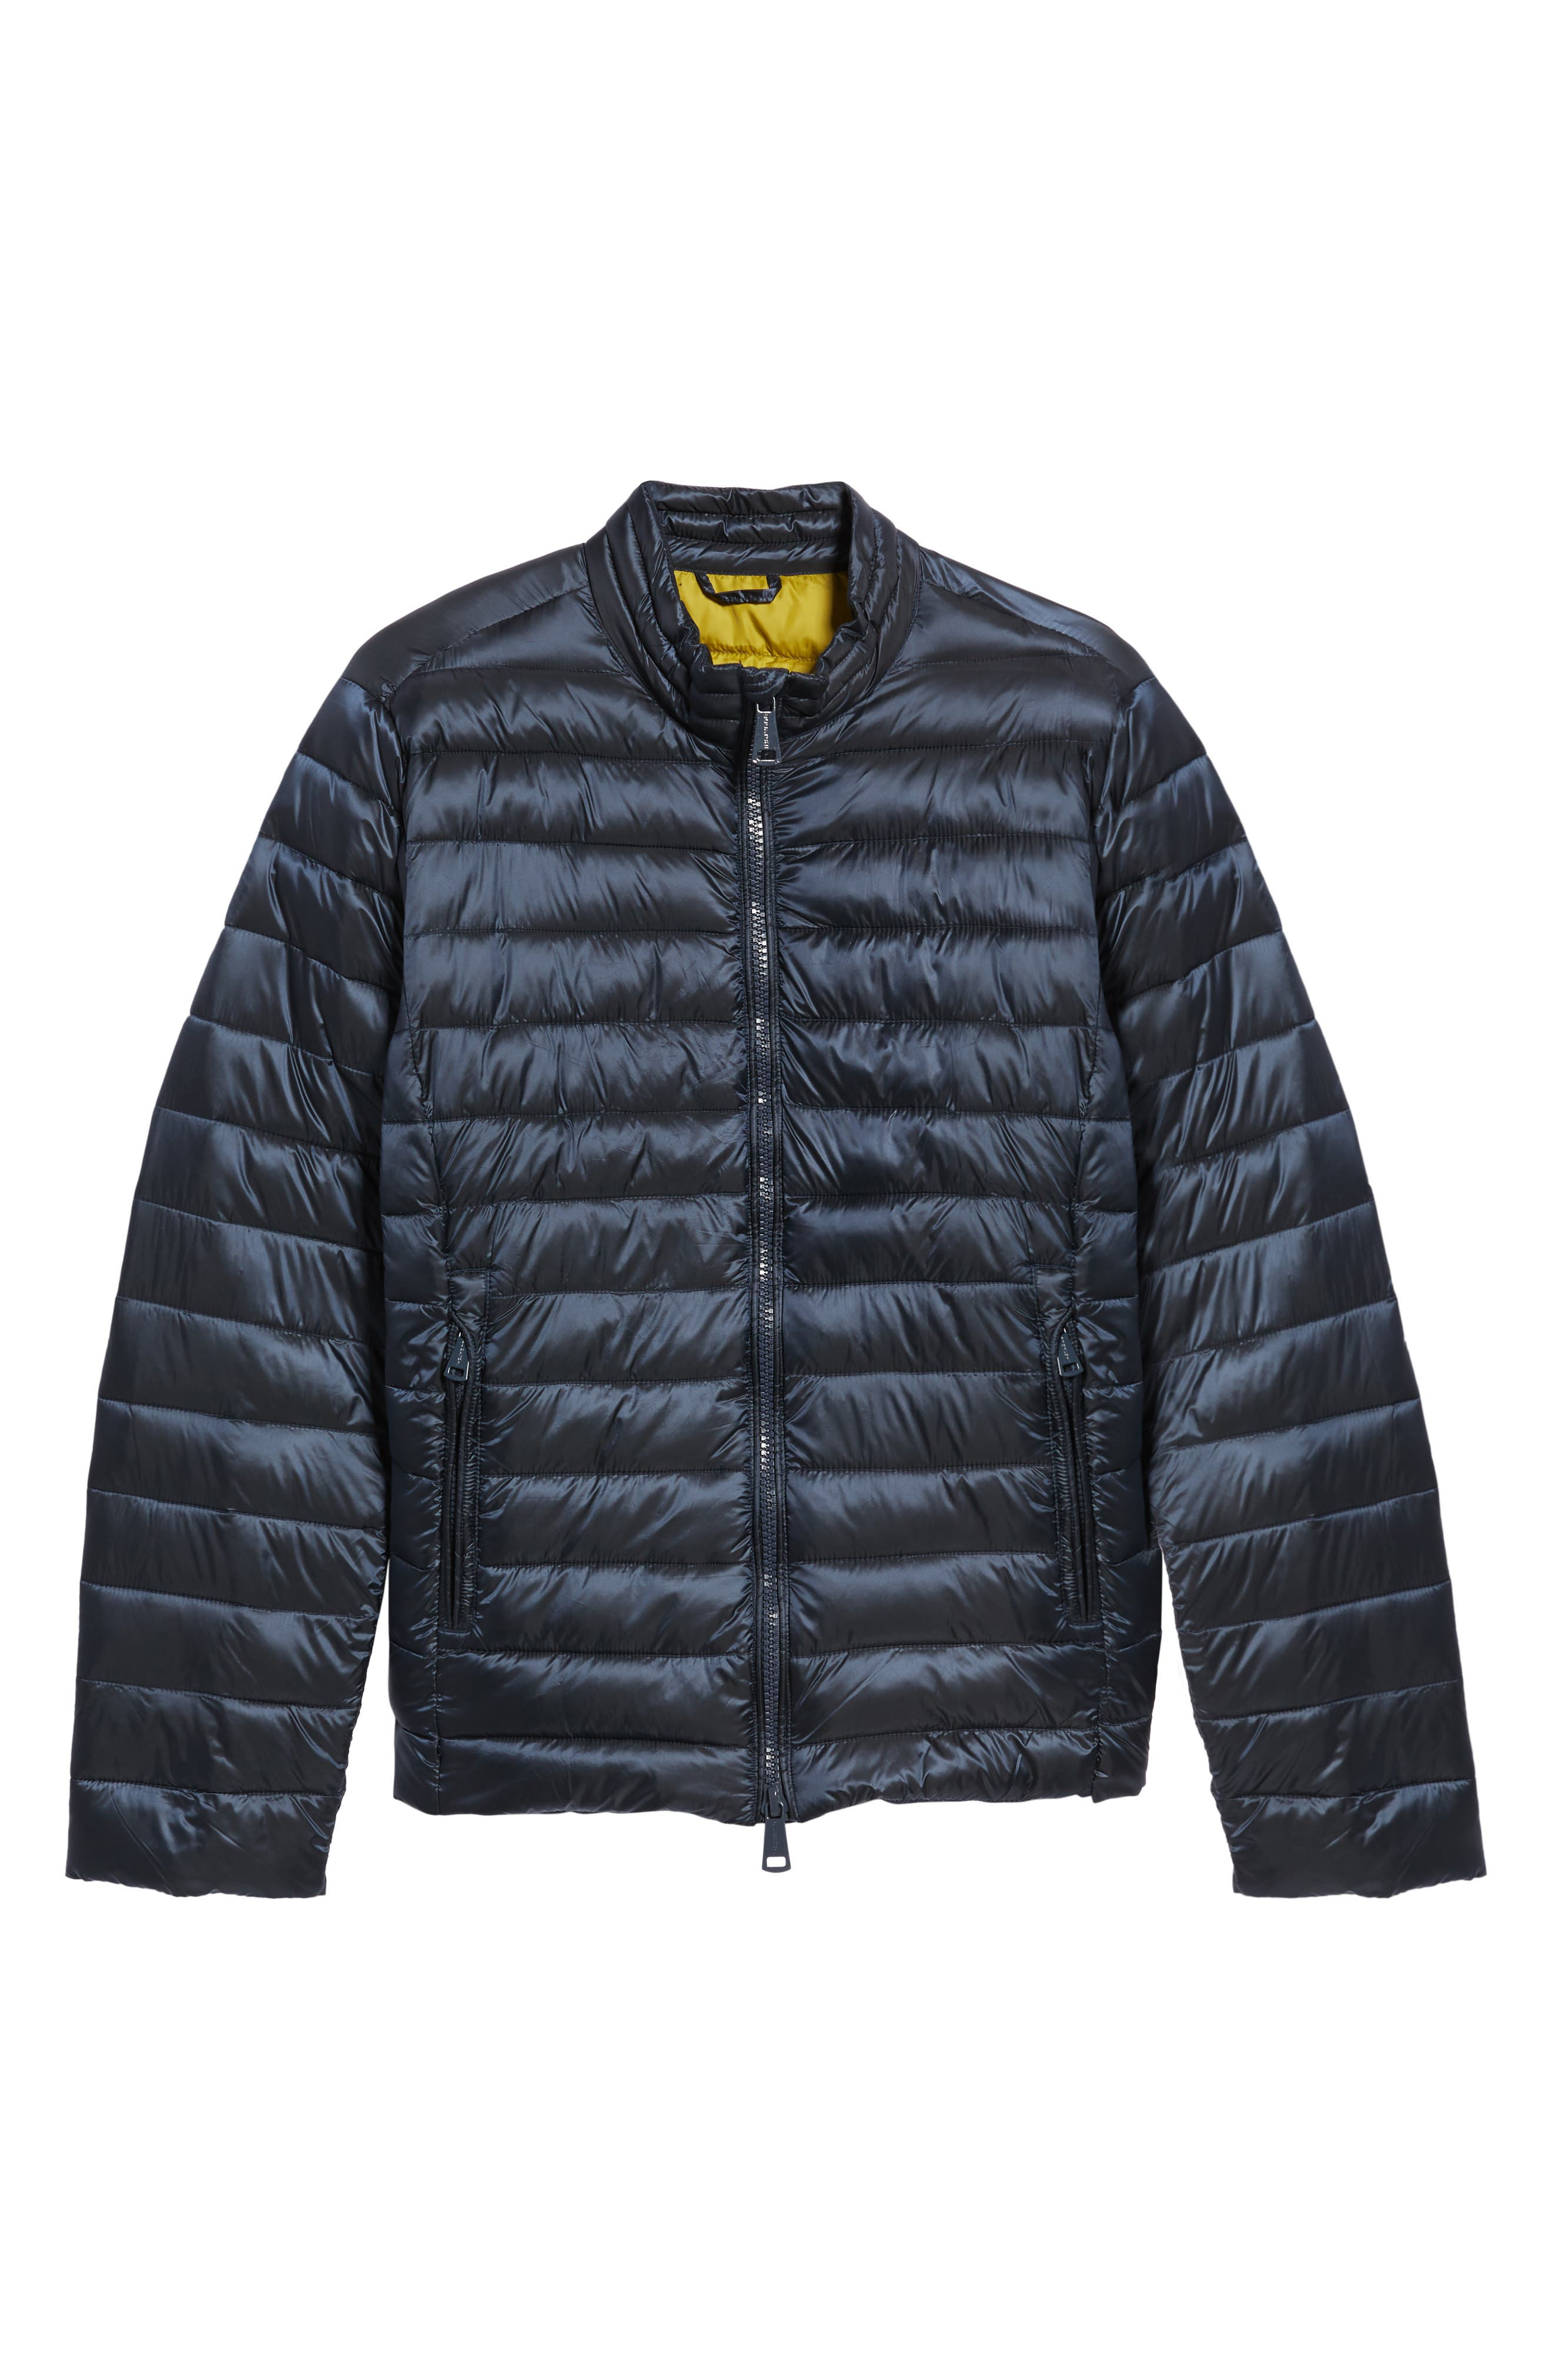 Channel Quilted Jacket,                             Alternate thumbnail 6, color,                             Navy